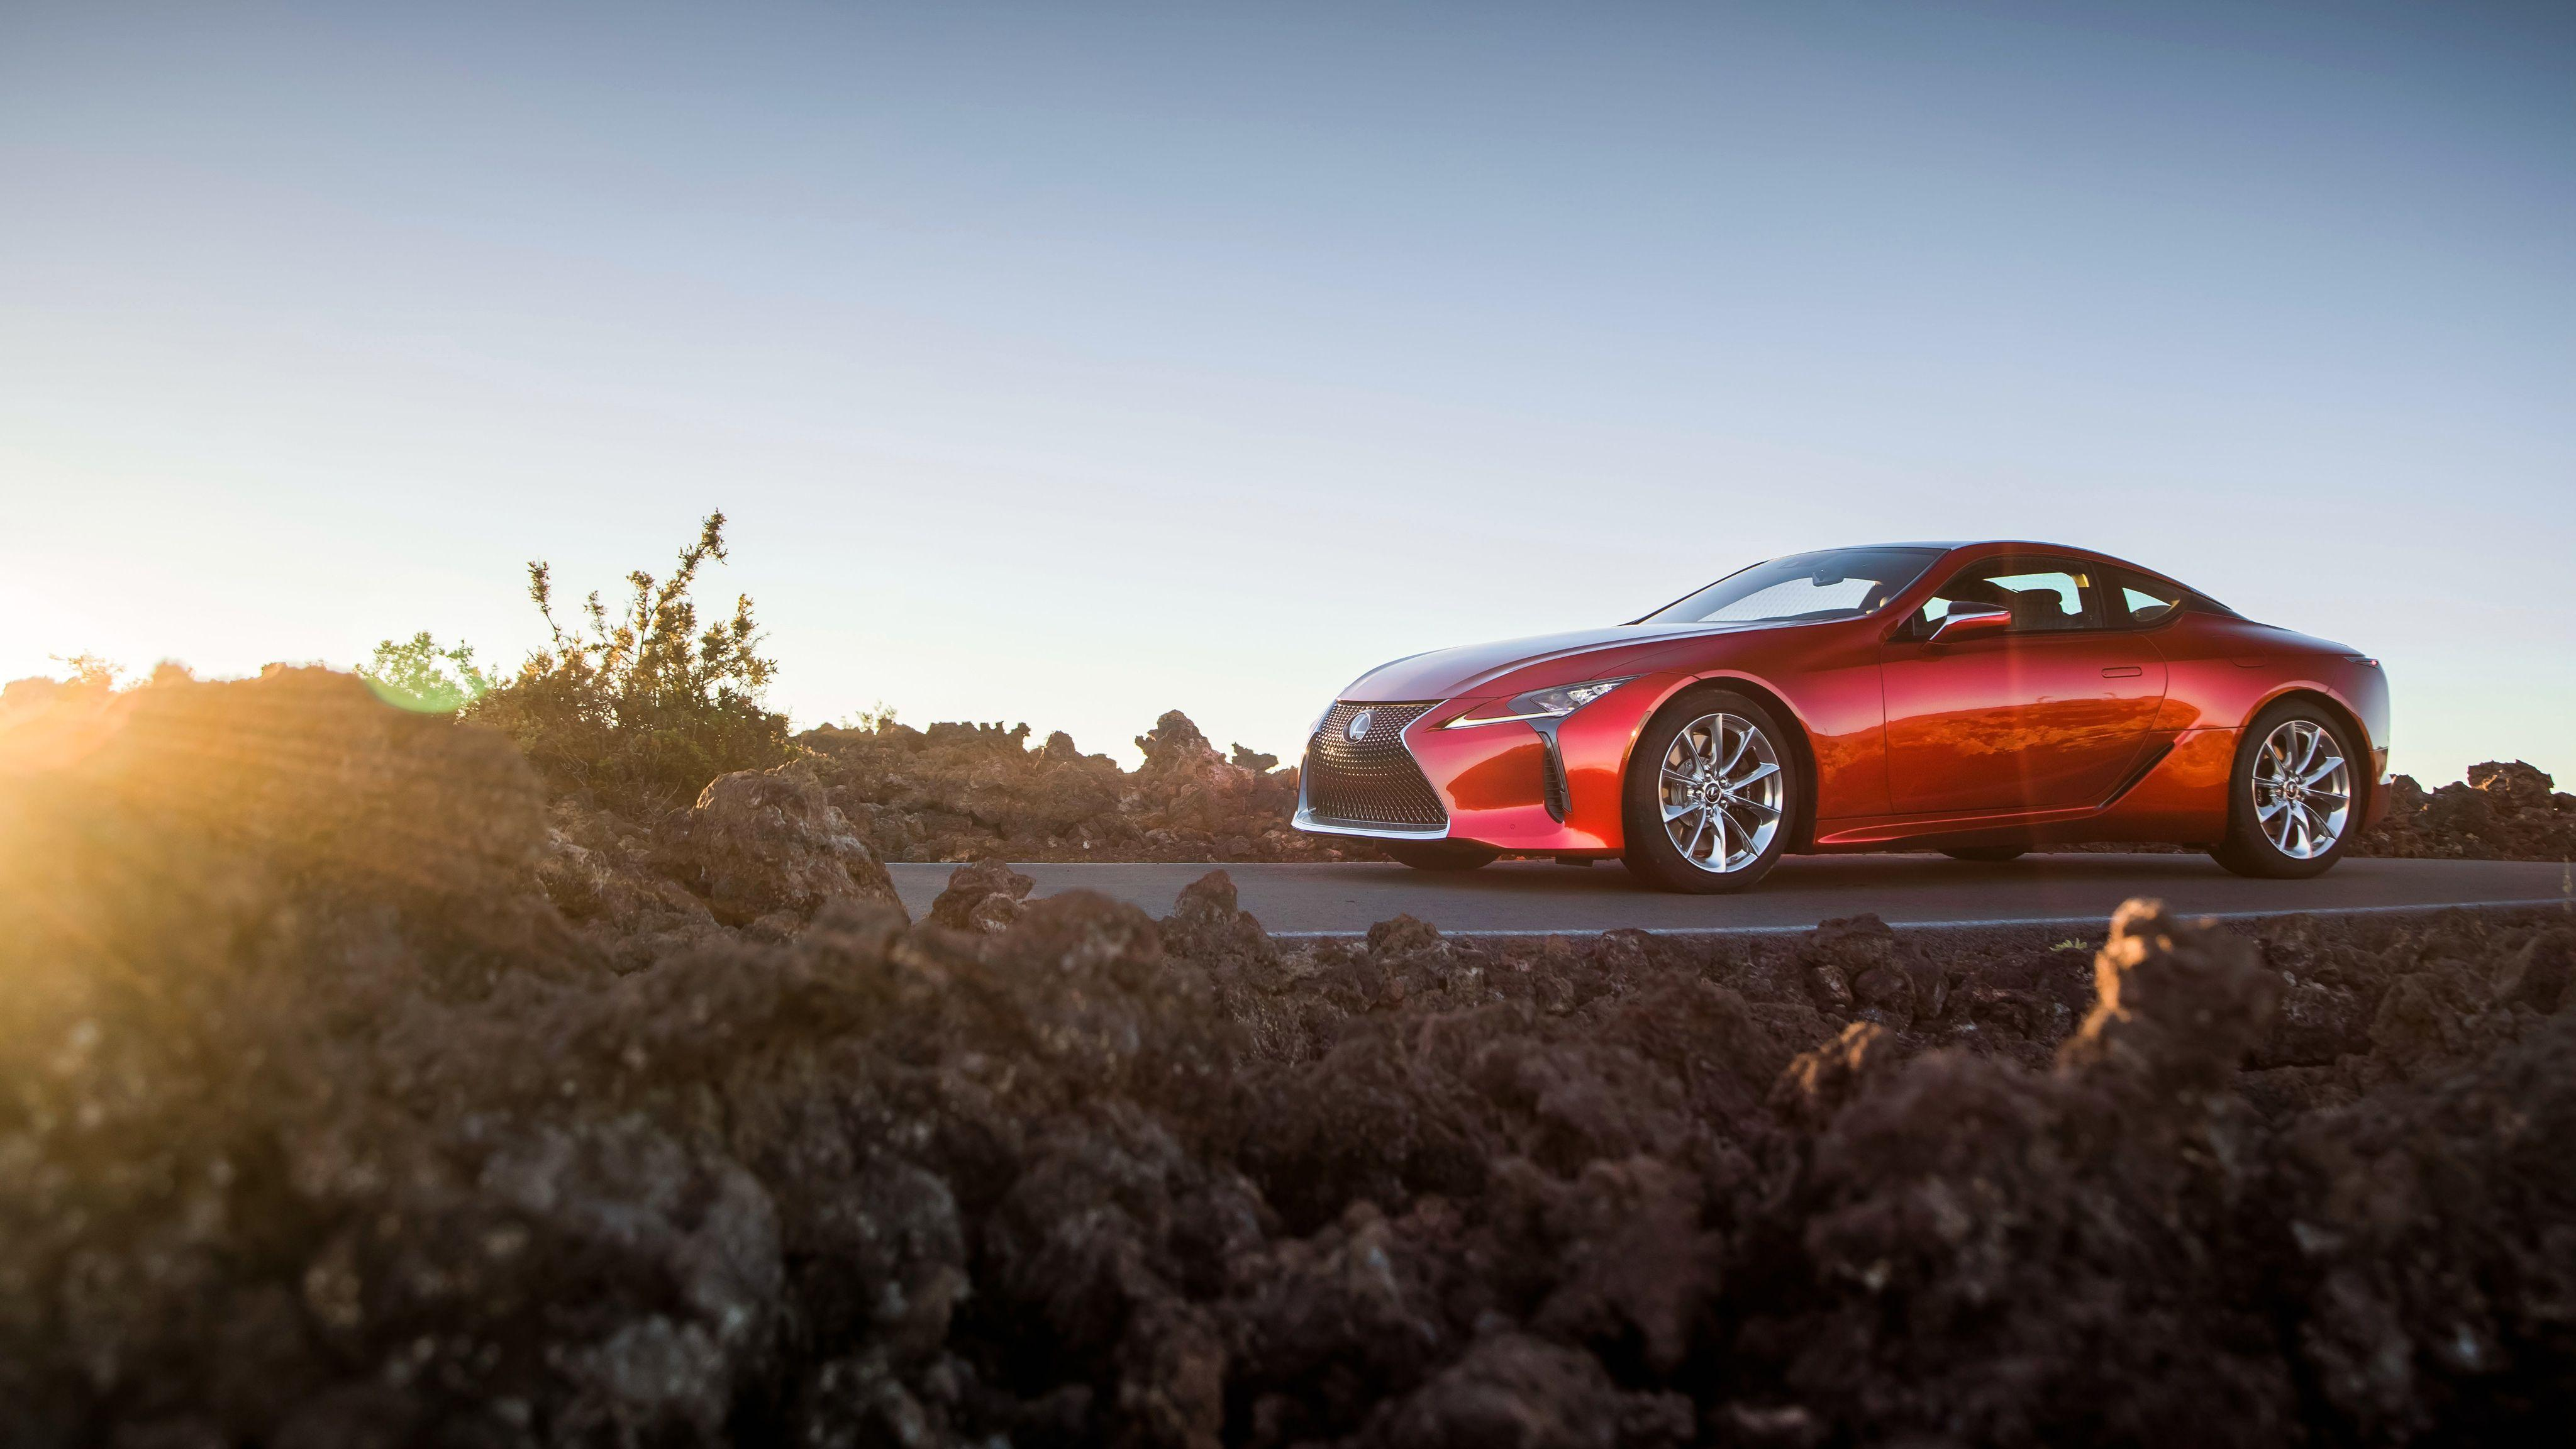 2018 Lexus LC 500 3 Wallpaper | HD Car Wallpapers